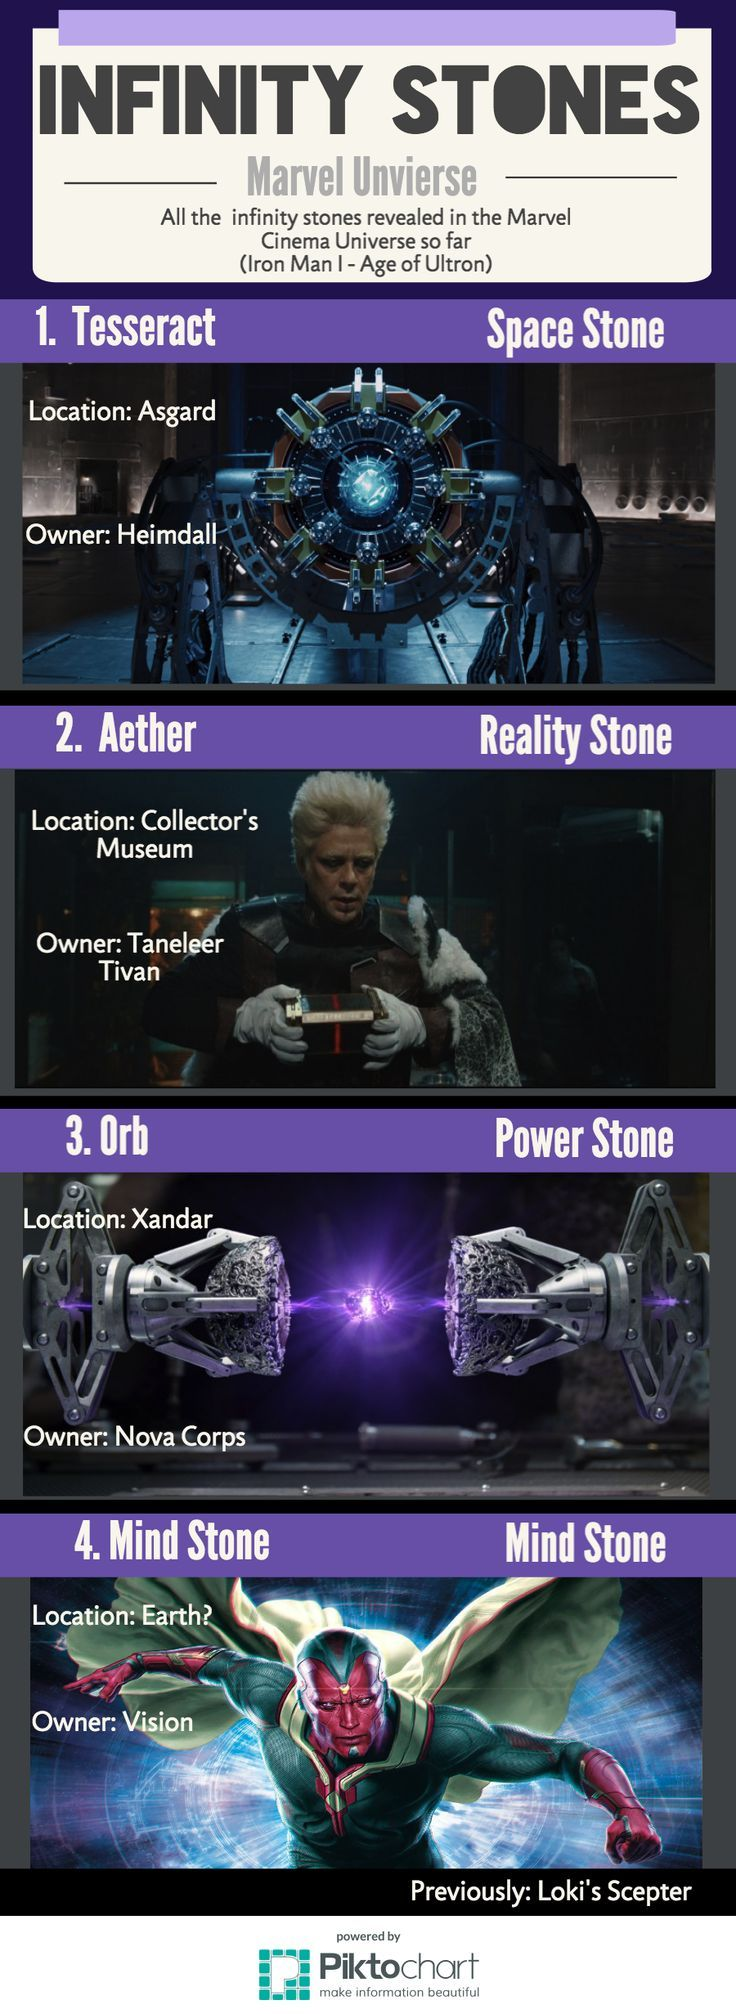 All infinity stones revealed by Marvel Cinematic Universe until Age of Ultron